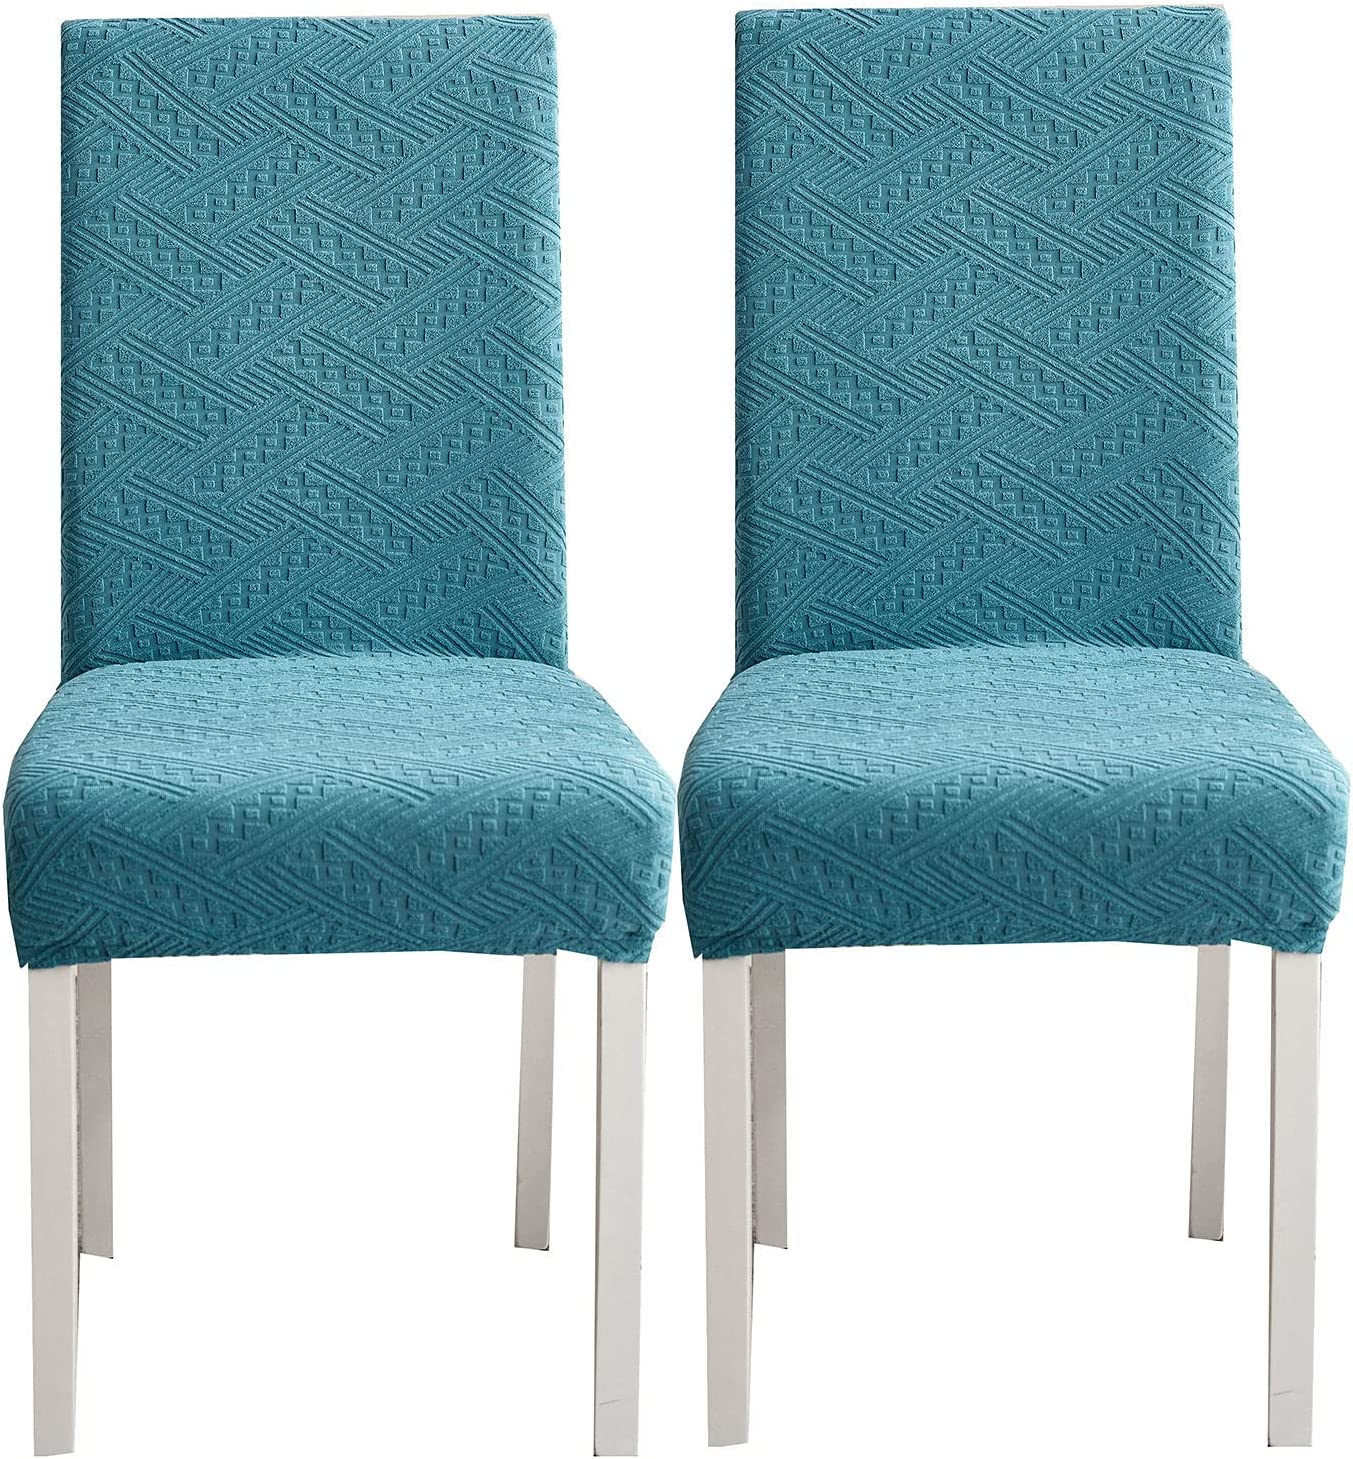 Chicago Mall Jacquard Stretch Dining Room Chair Covers 2 Max 46% OFF of D Waterproof Set